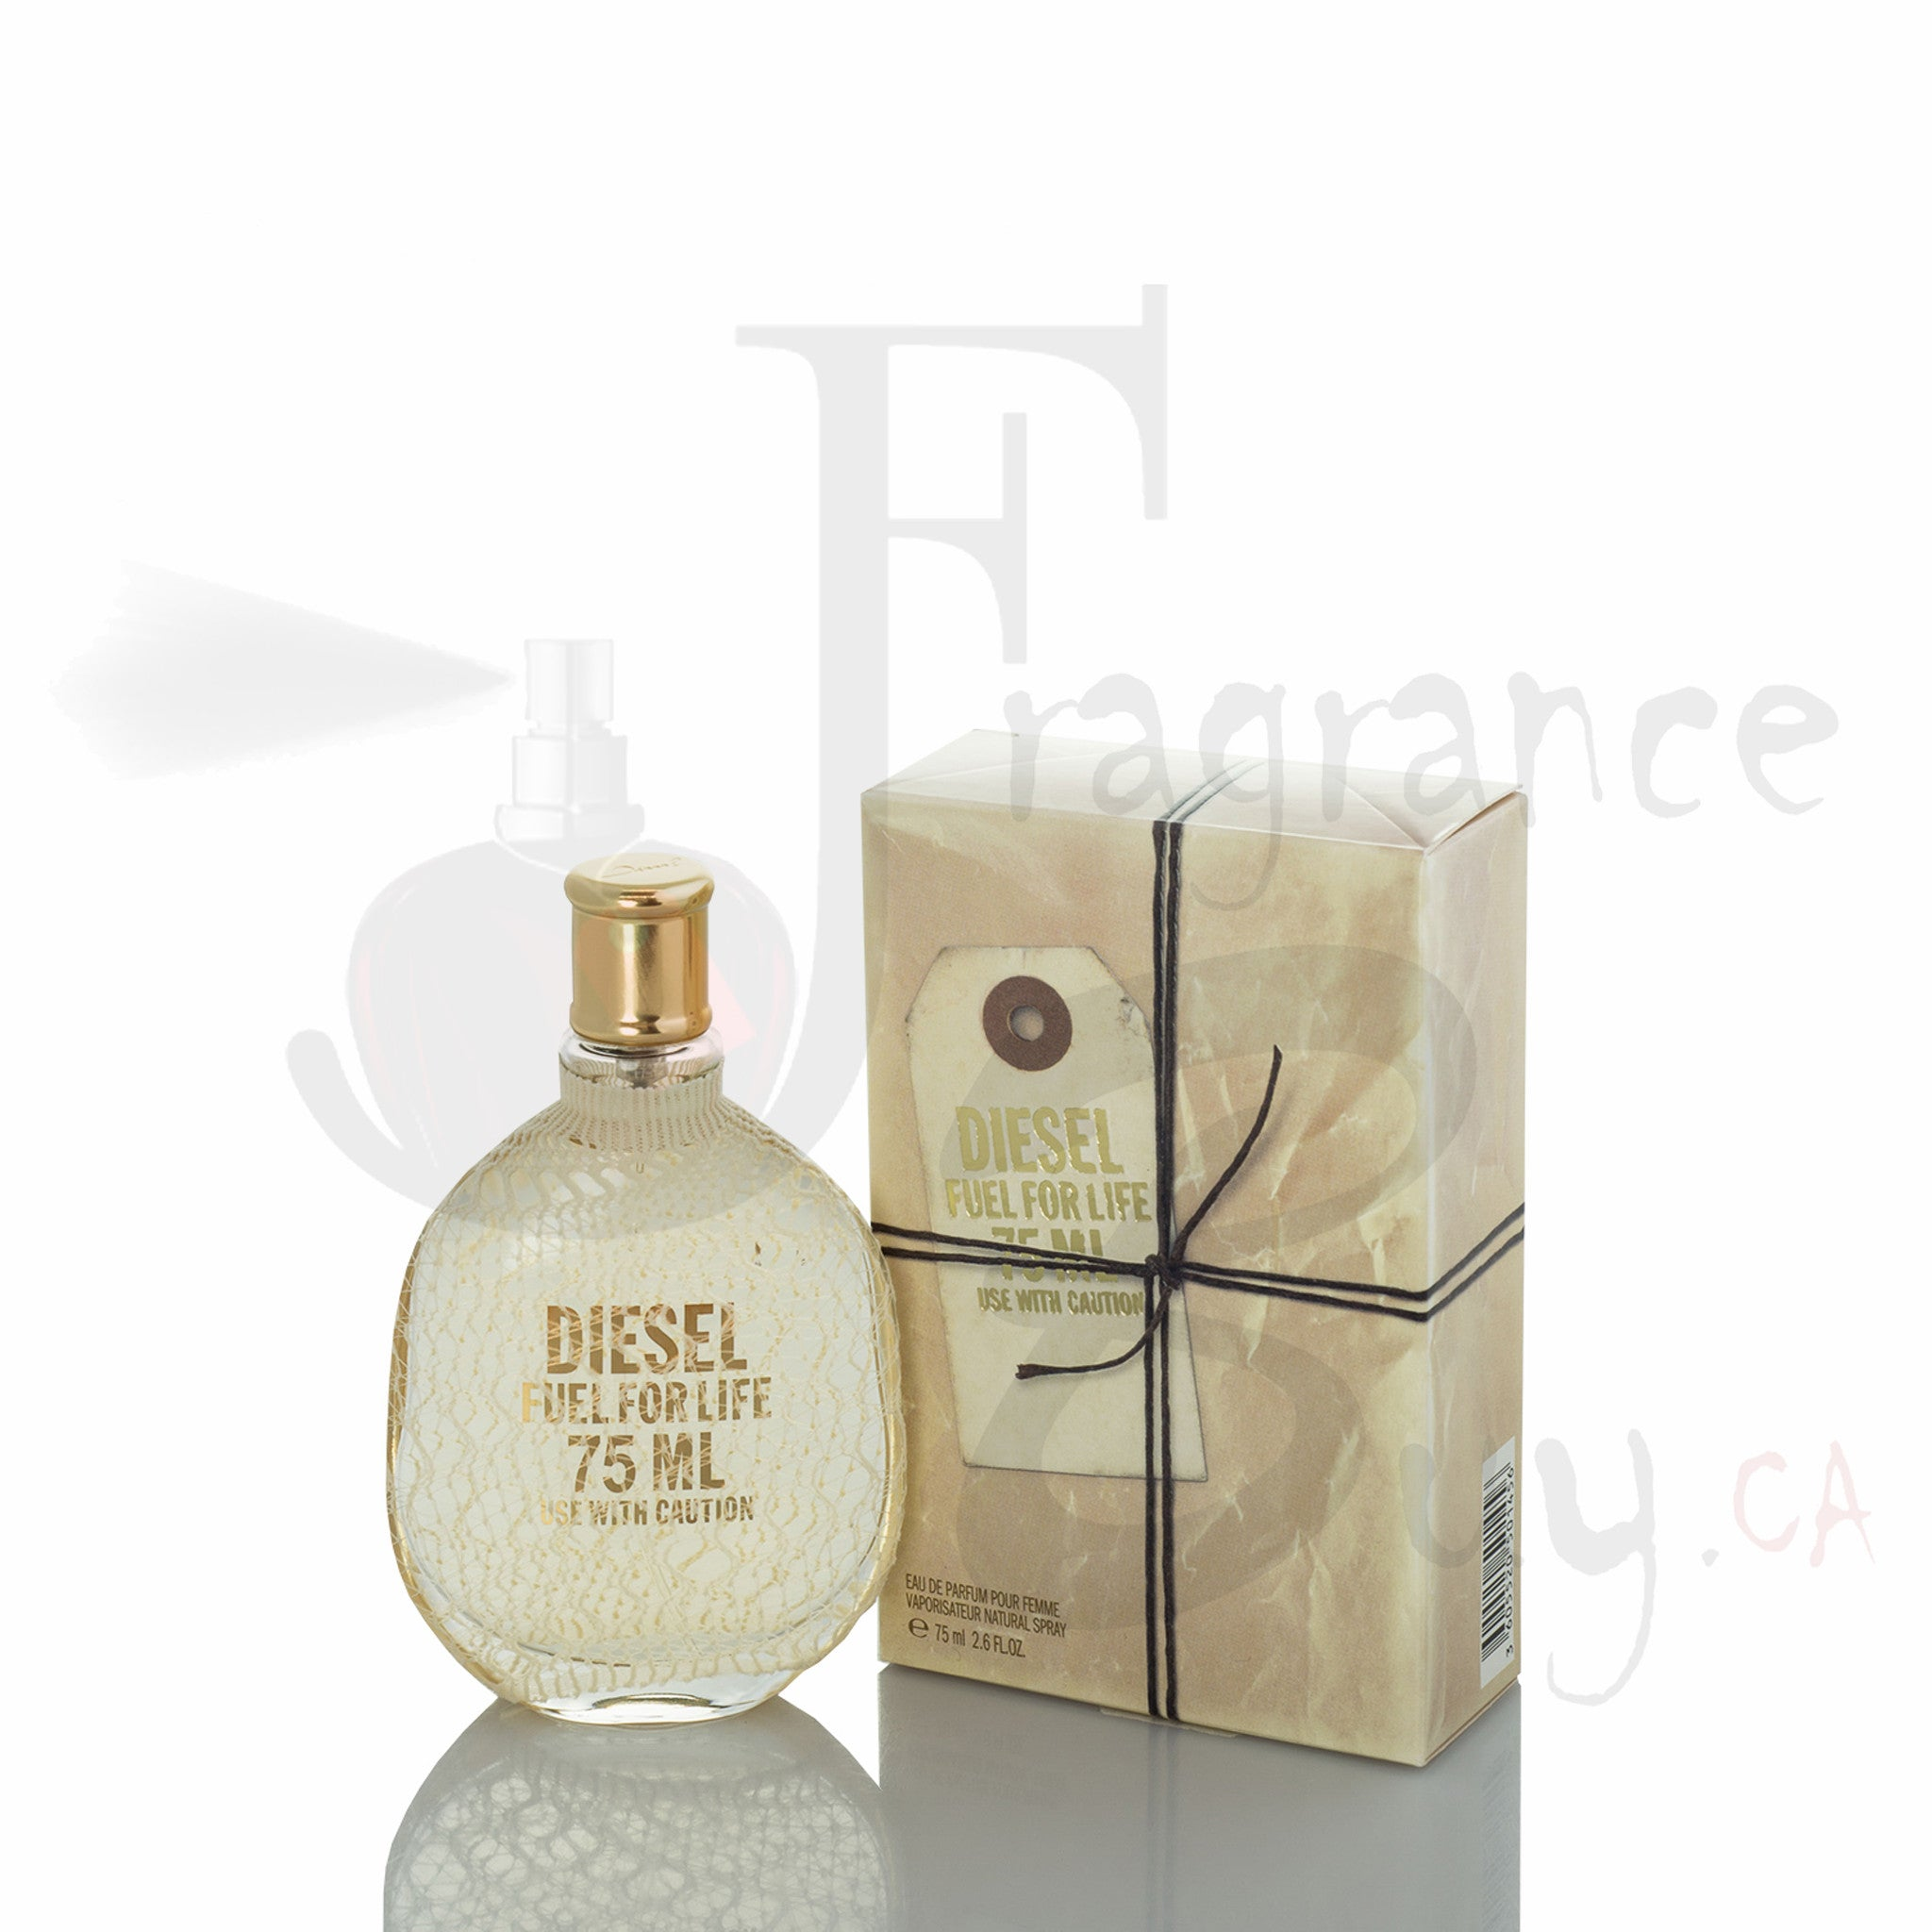 Diesel Fuel For Life Woman in Pouch Fragrance